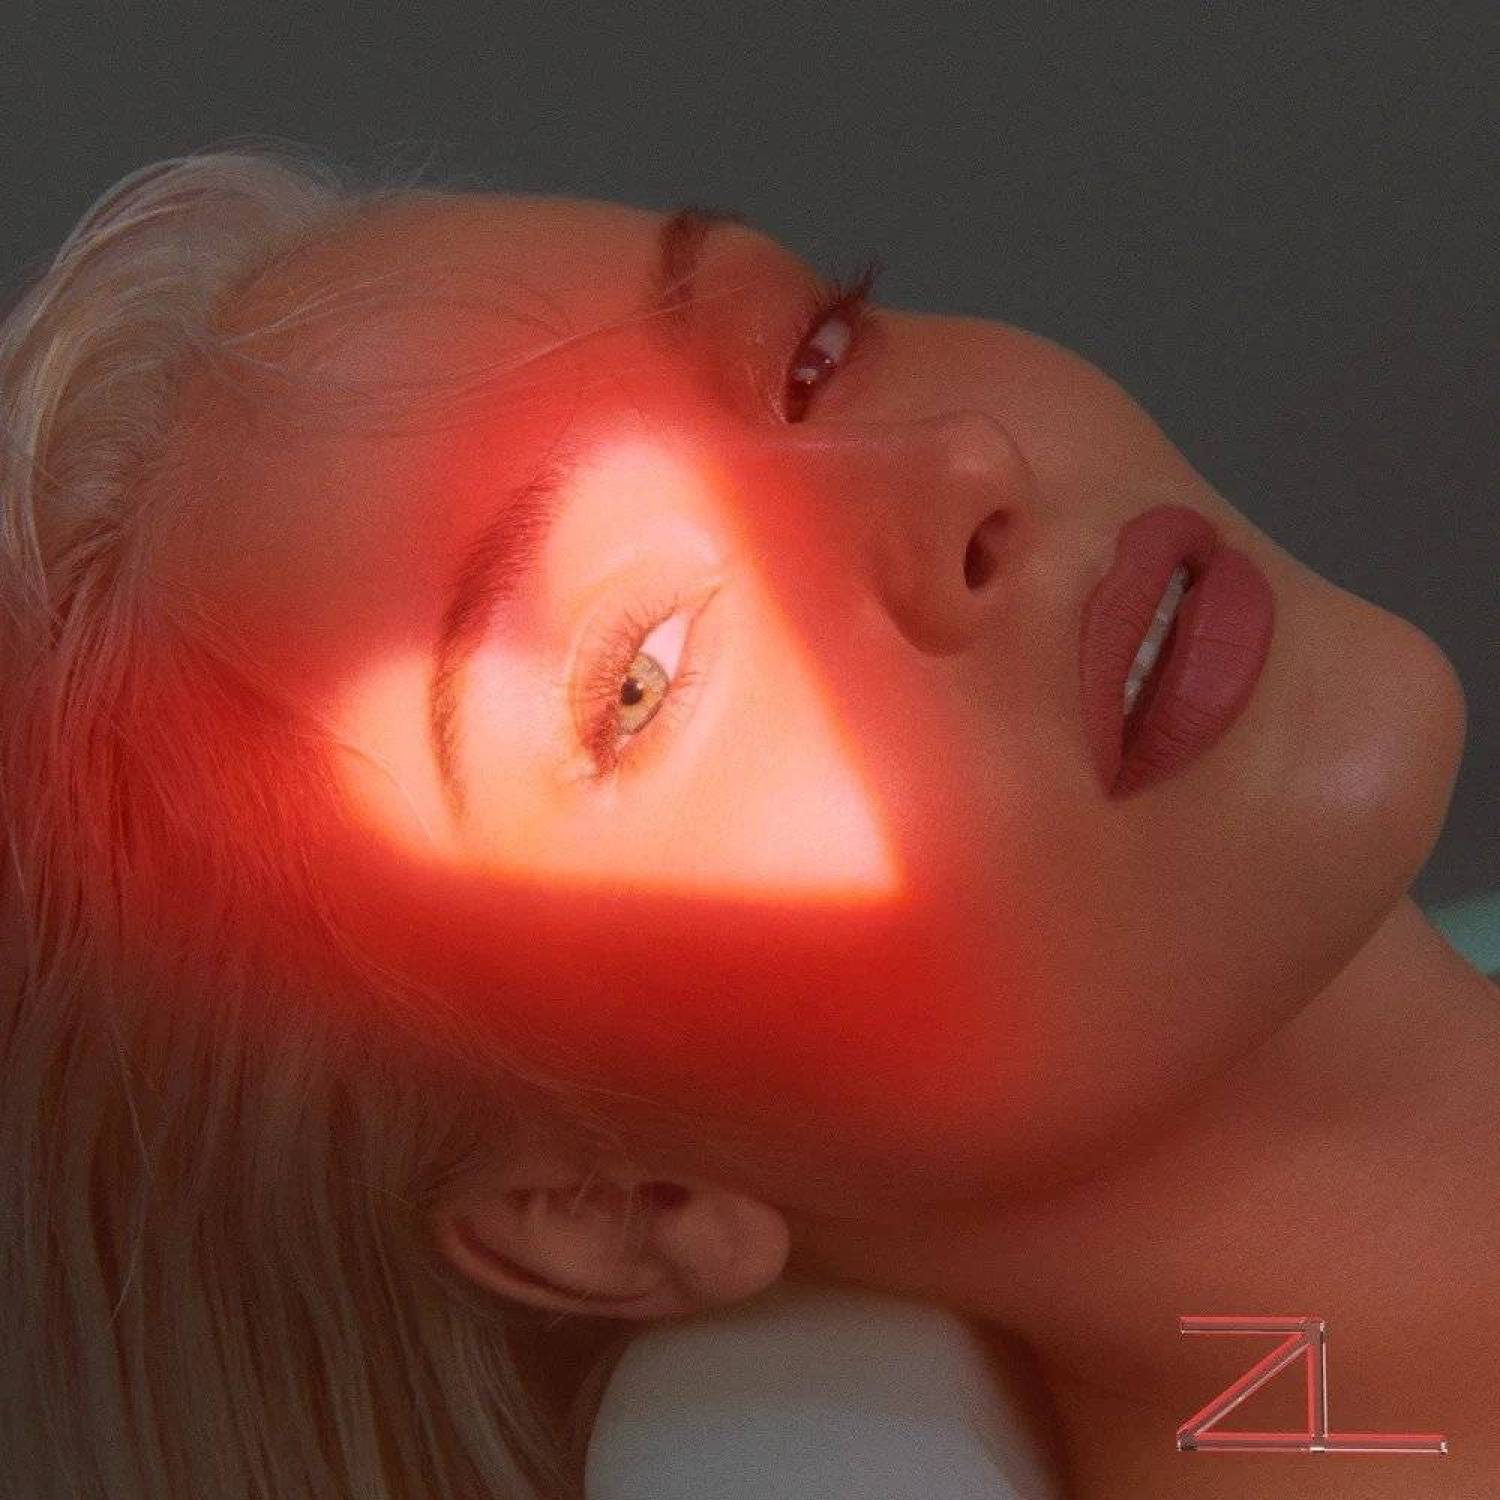 DOWNLOAD MP3: Zara Larsson Ft. Young Thug – Talk About Love